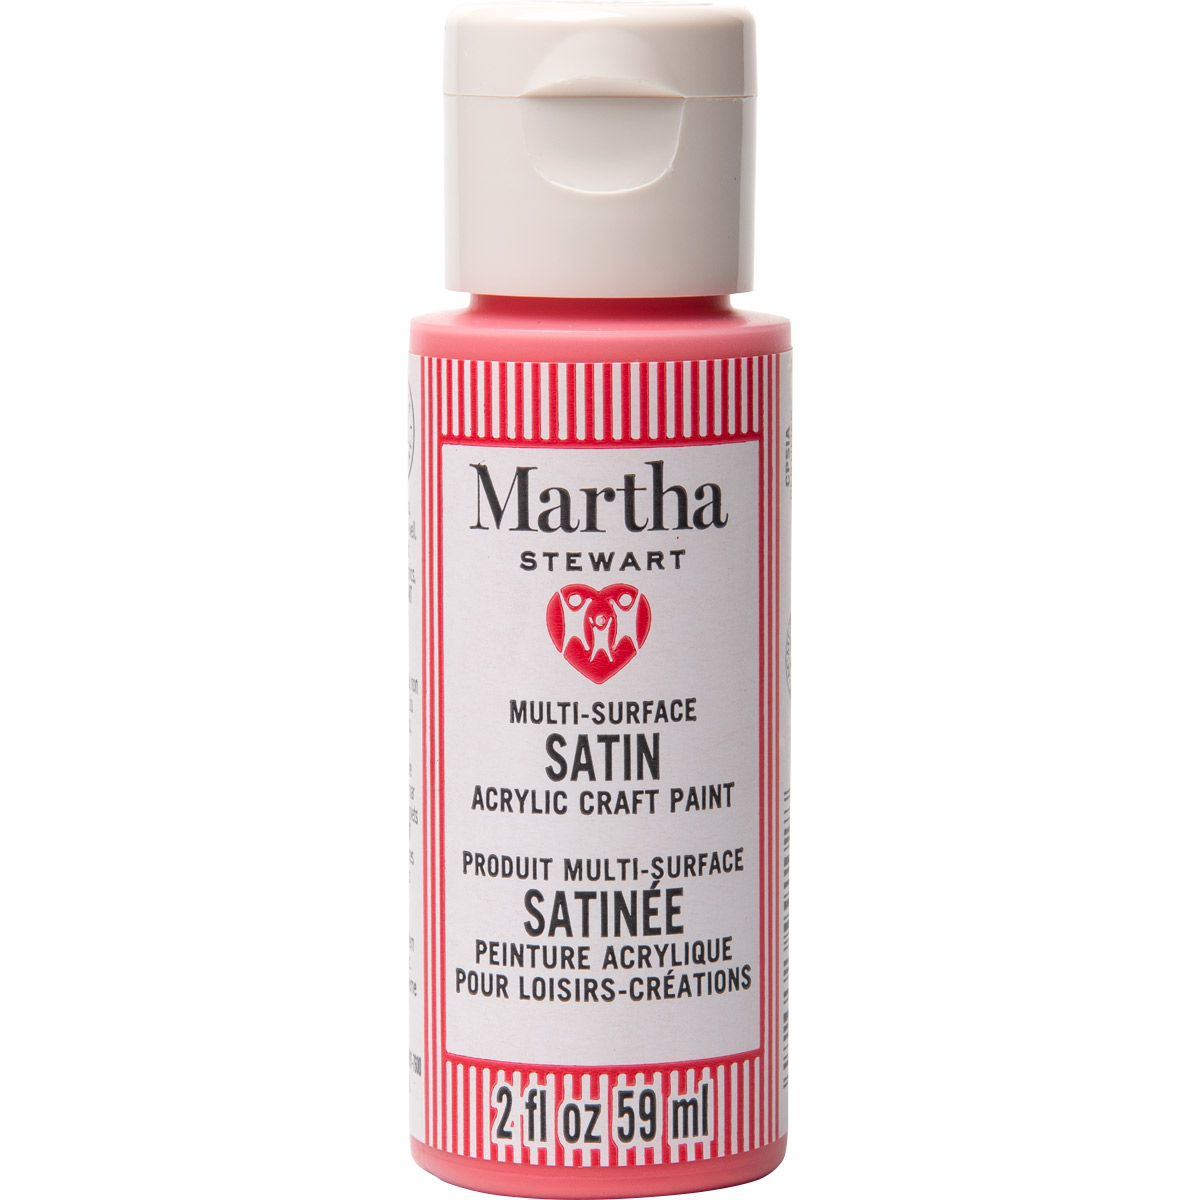 Martha Stewart ® Multi-Surface Satin Acrylic Craft Paint CPSIA - Watermelon, 2 oz. - 99102